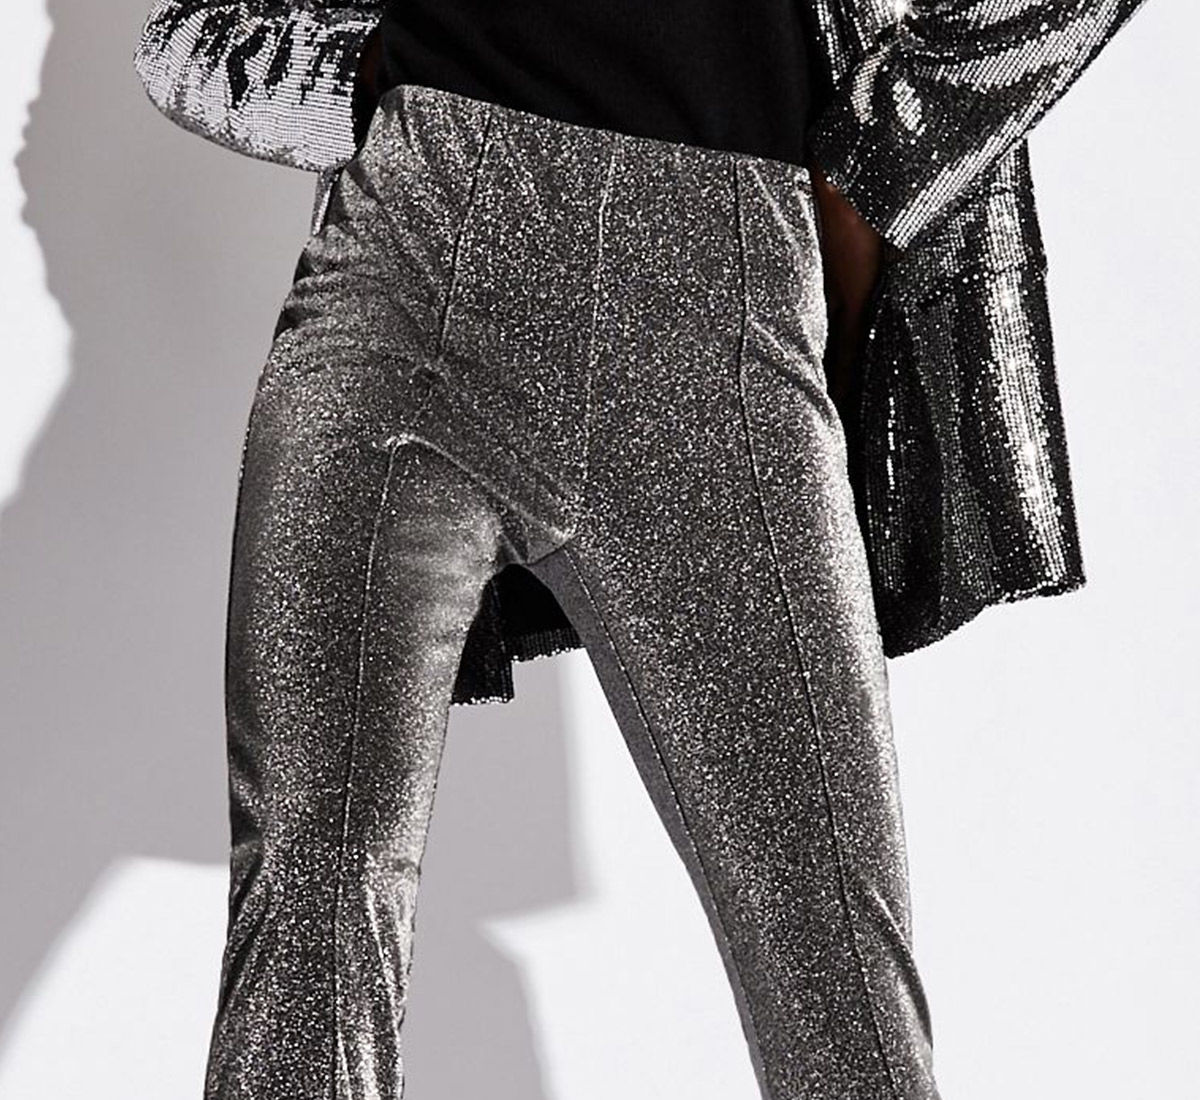 Armani Exchange woman model wearing a silver pants